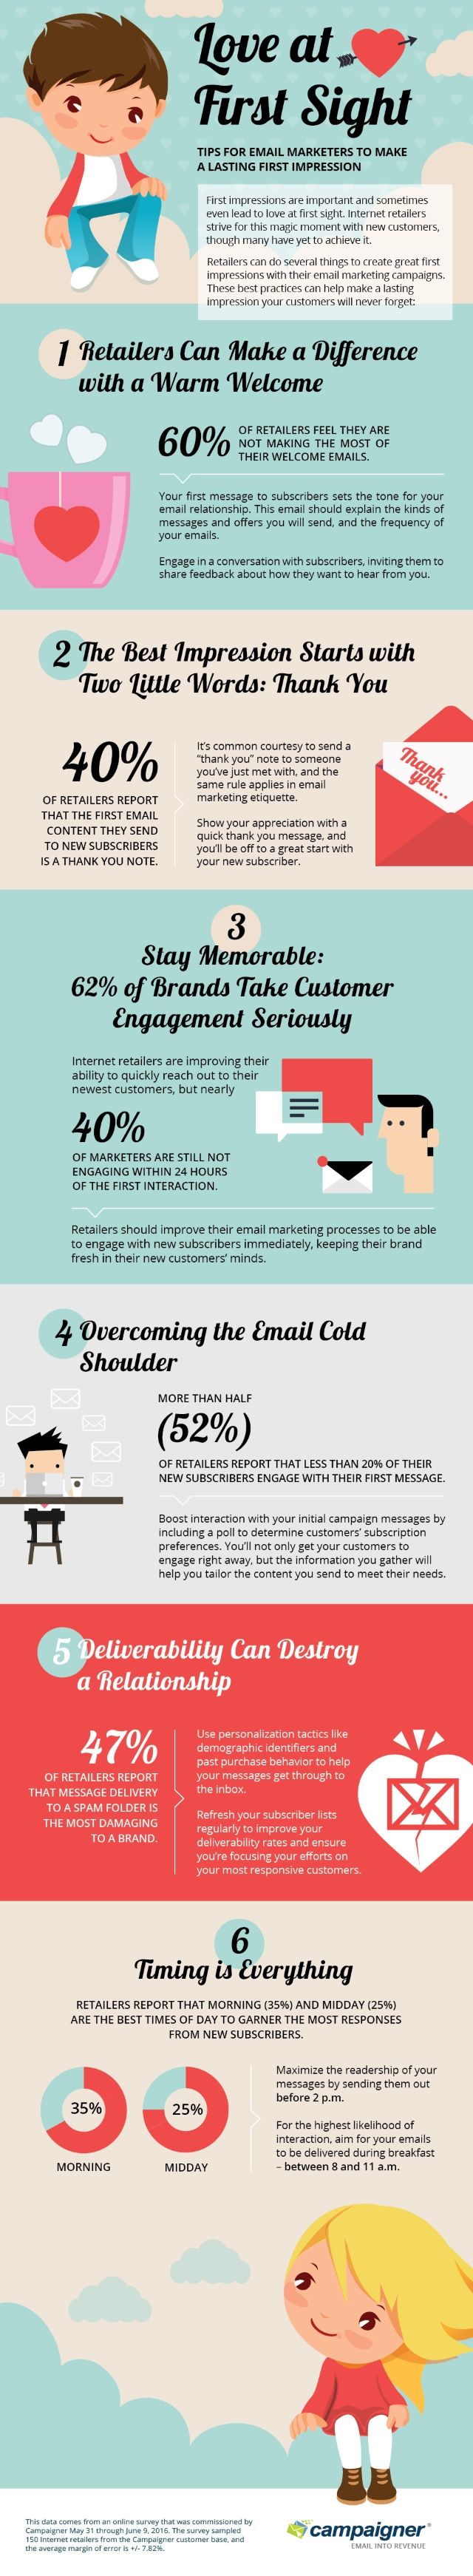 Campaigner email marketing infographic